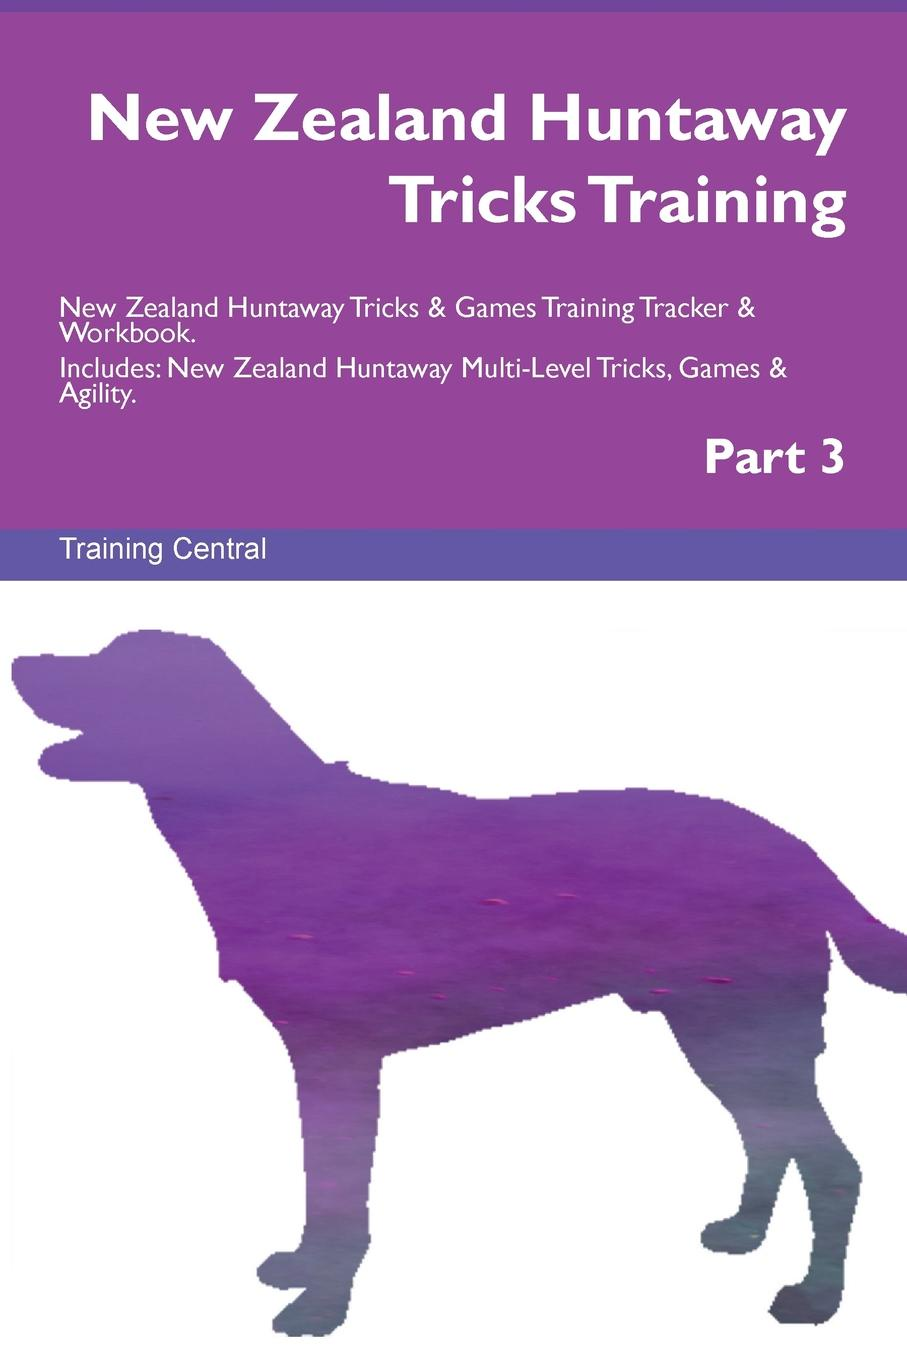 Training Central New Zealand Huntaway Tricks Training New Zealand Huntaway Tricks . Games Training Tracker . Workbook. Includes. New Zealand Huntaway Multi-Level Tricks, Games . Agility. Part 3 цена